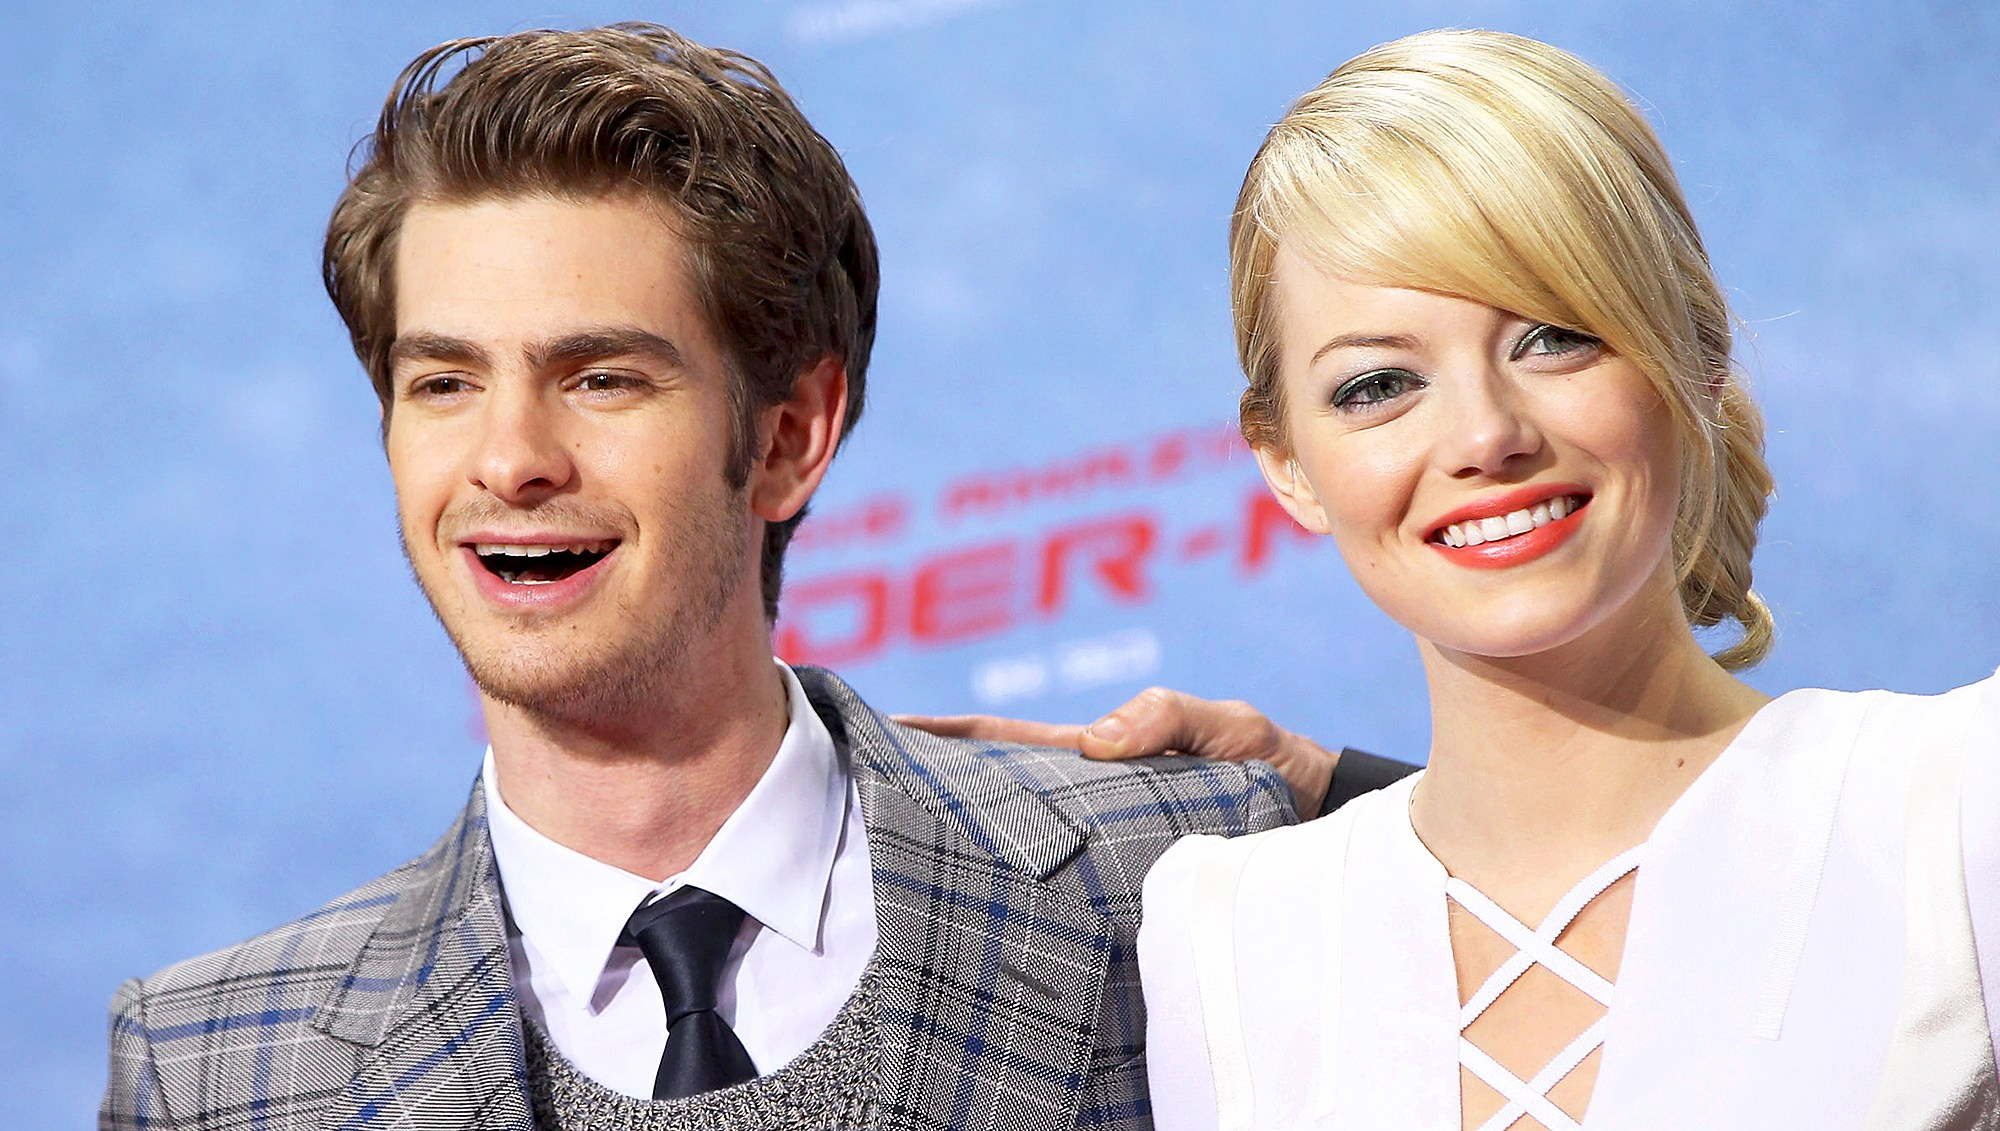 """Andrew Garfield and Emma Stone attend the premiere of """"The Amazing Spider-Man"""" at Sony Center on June 20, 2012 in Berlin, Germany."""